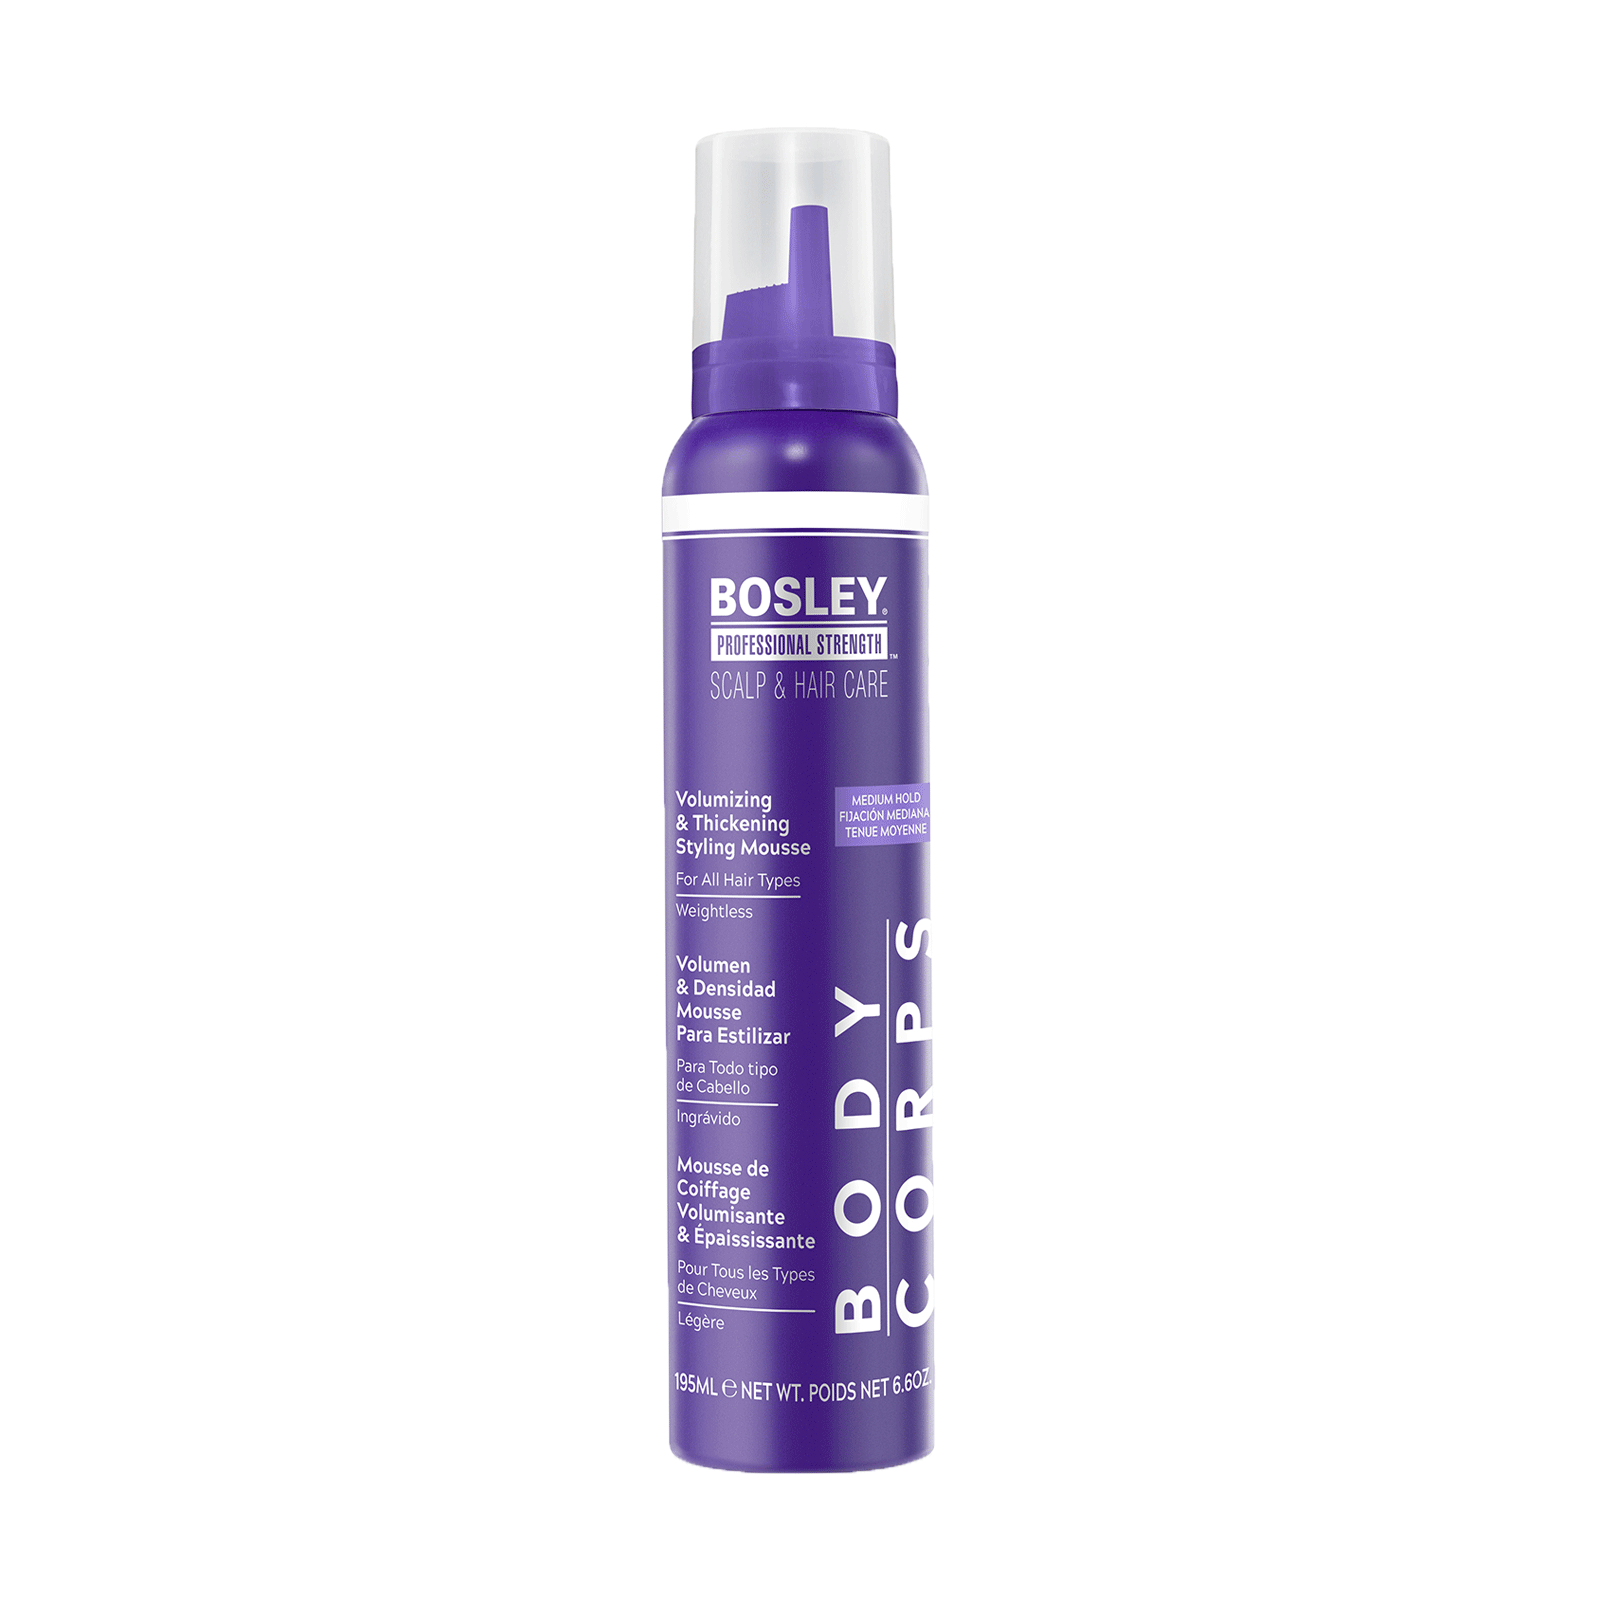 Volumizing & Styling Mousse